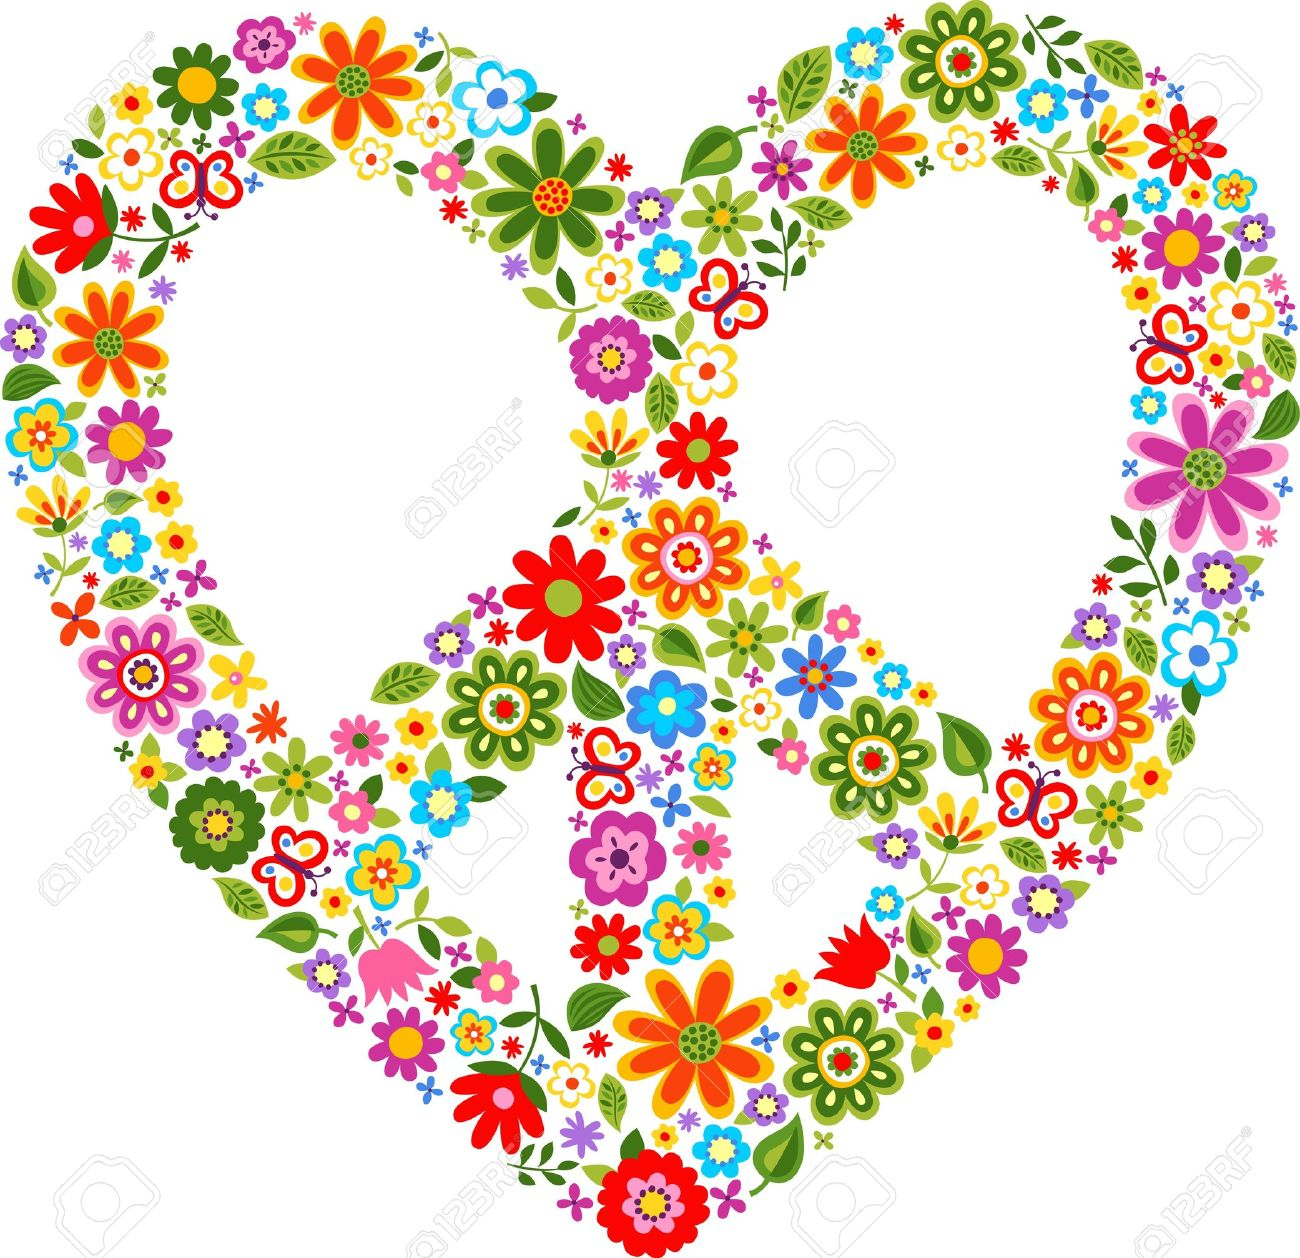 Heart Peace Symbol With Floral Pattern Royalty Free Cliparts